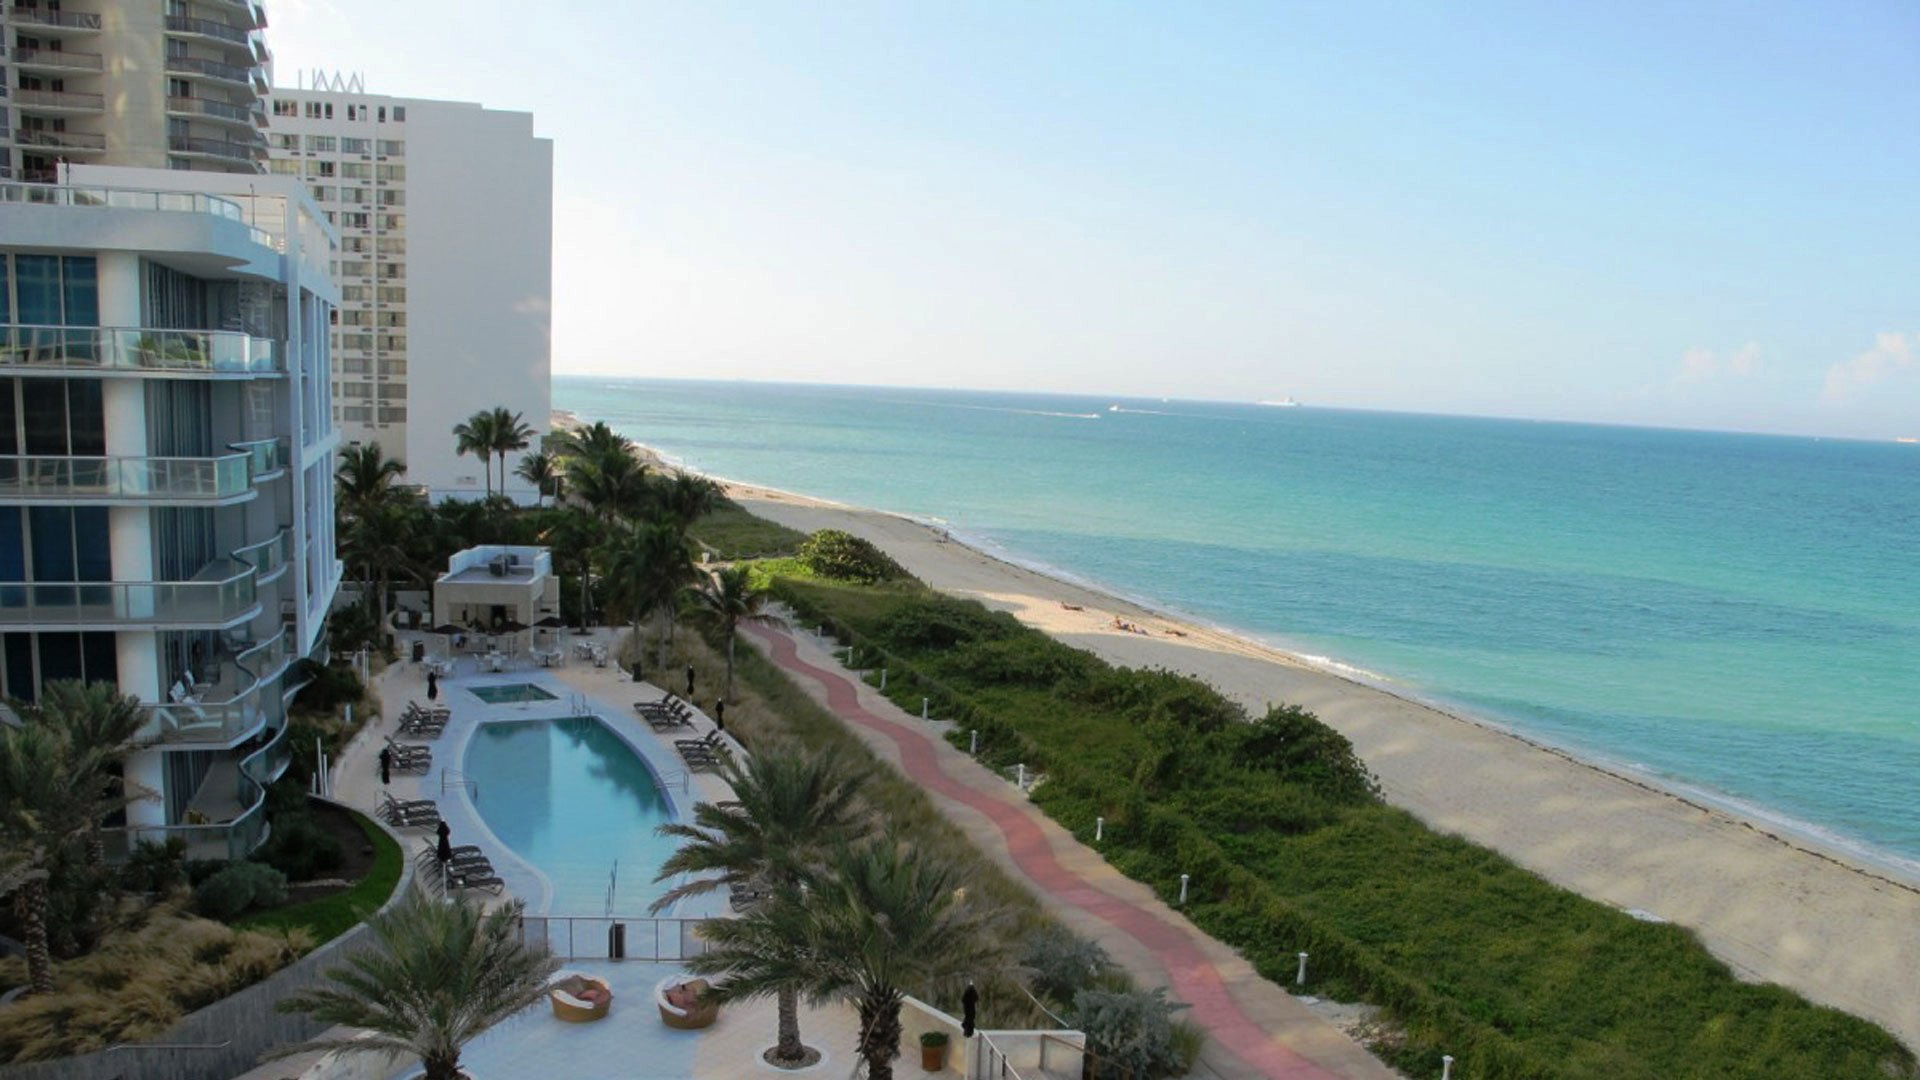 miami beach hotel hd wallpaper | wallpapers55.com - Best Wallpapers ...